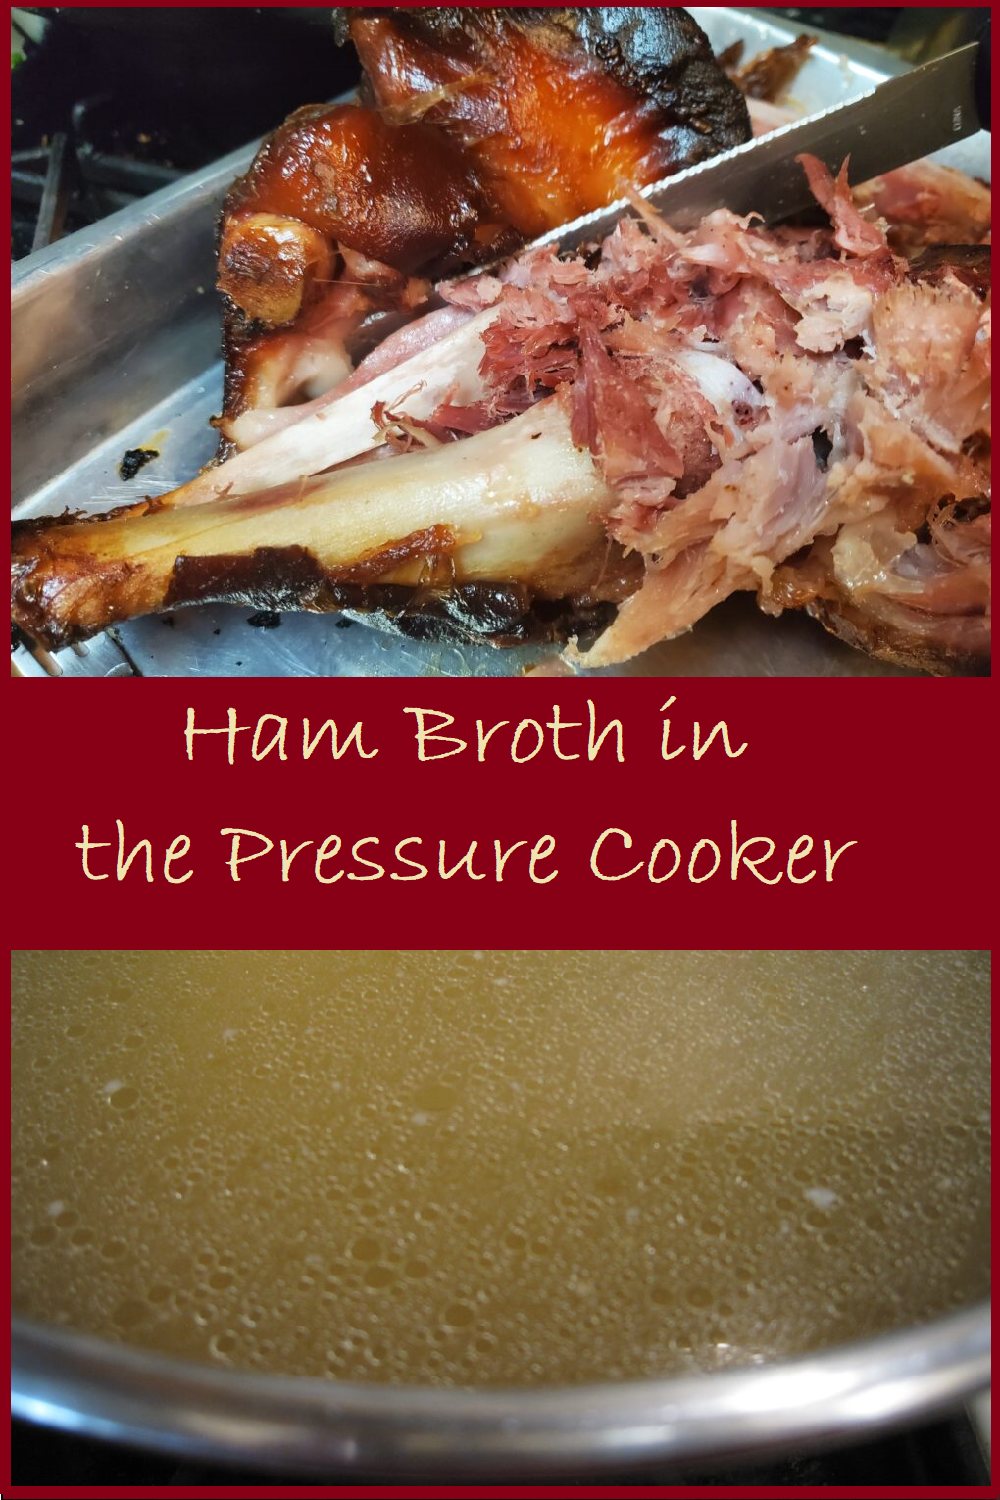 """Two photos melded together.  On top a ham bone.  On the bottom a pot full of broth.  A banner goes across the center with """"Ham broth in the pressure cooker"""" written in a cream colored font againt a maroon background"""